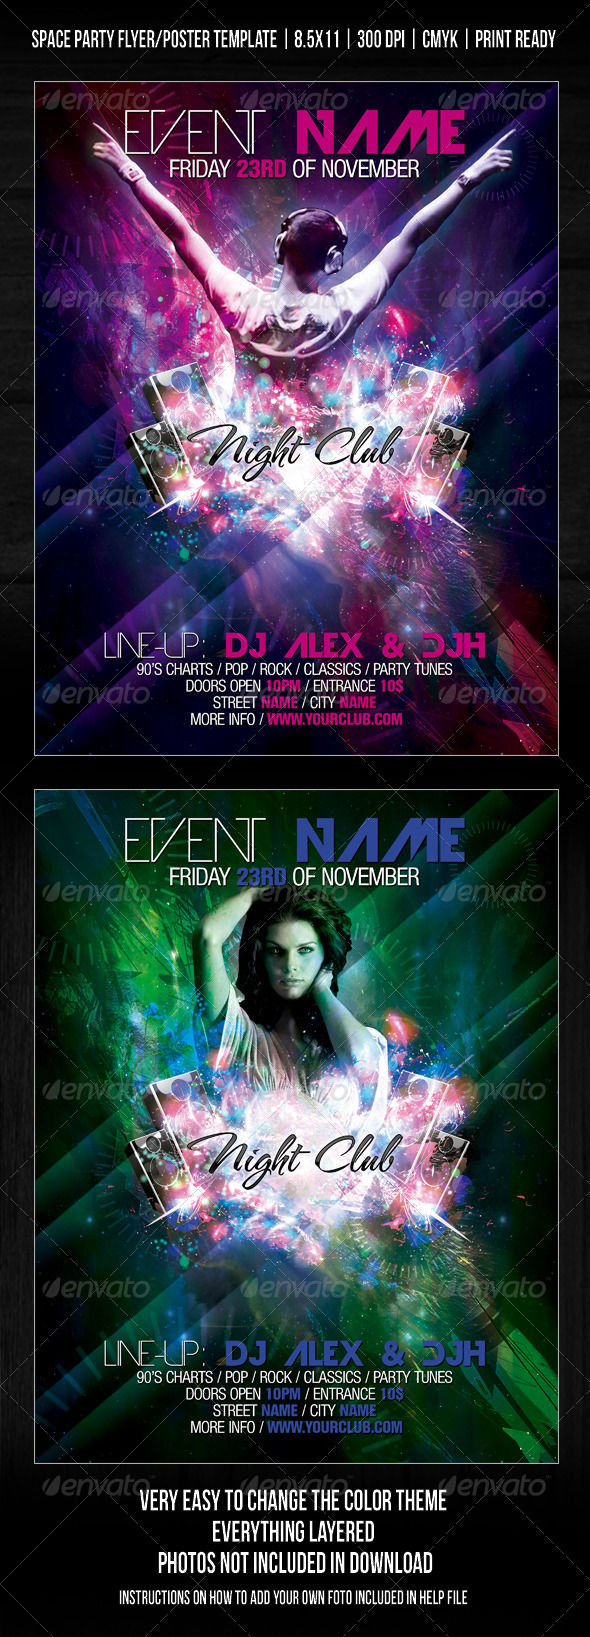 Night Club Space Party Flyer/Poster Template V2 - Clubs & Parties Events